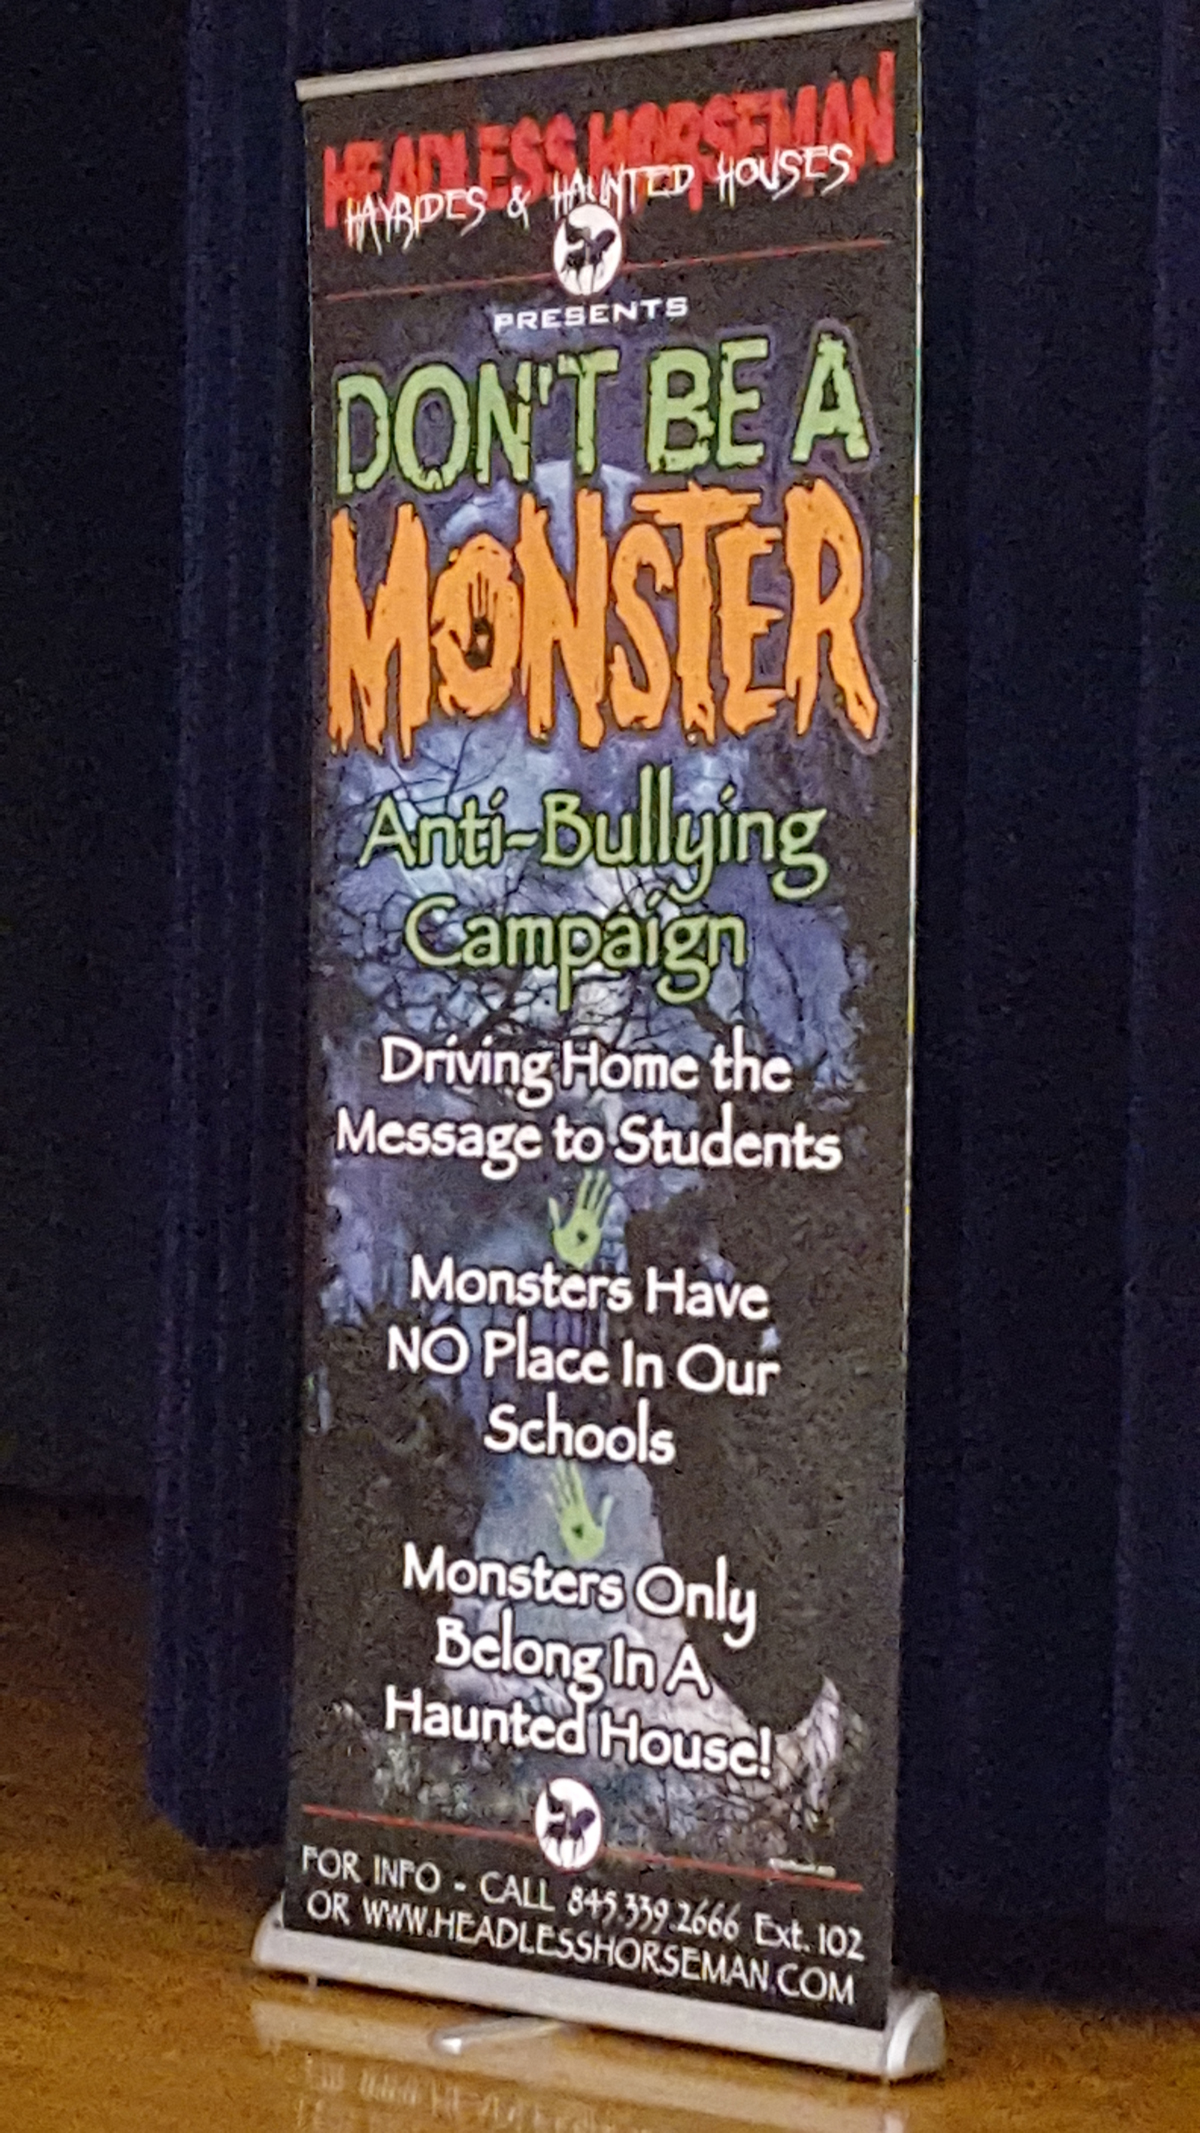 phot of Don't be a Monster banner